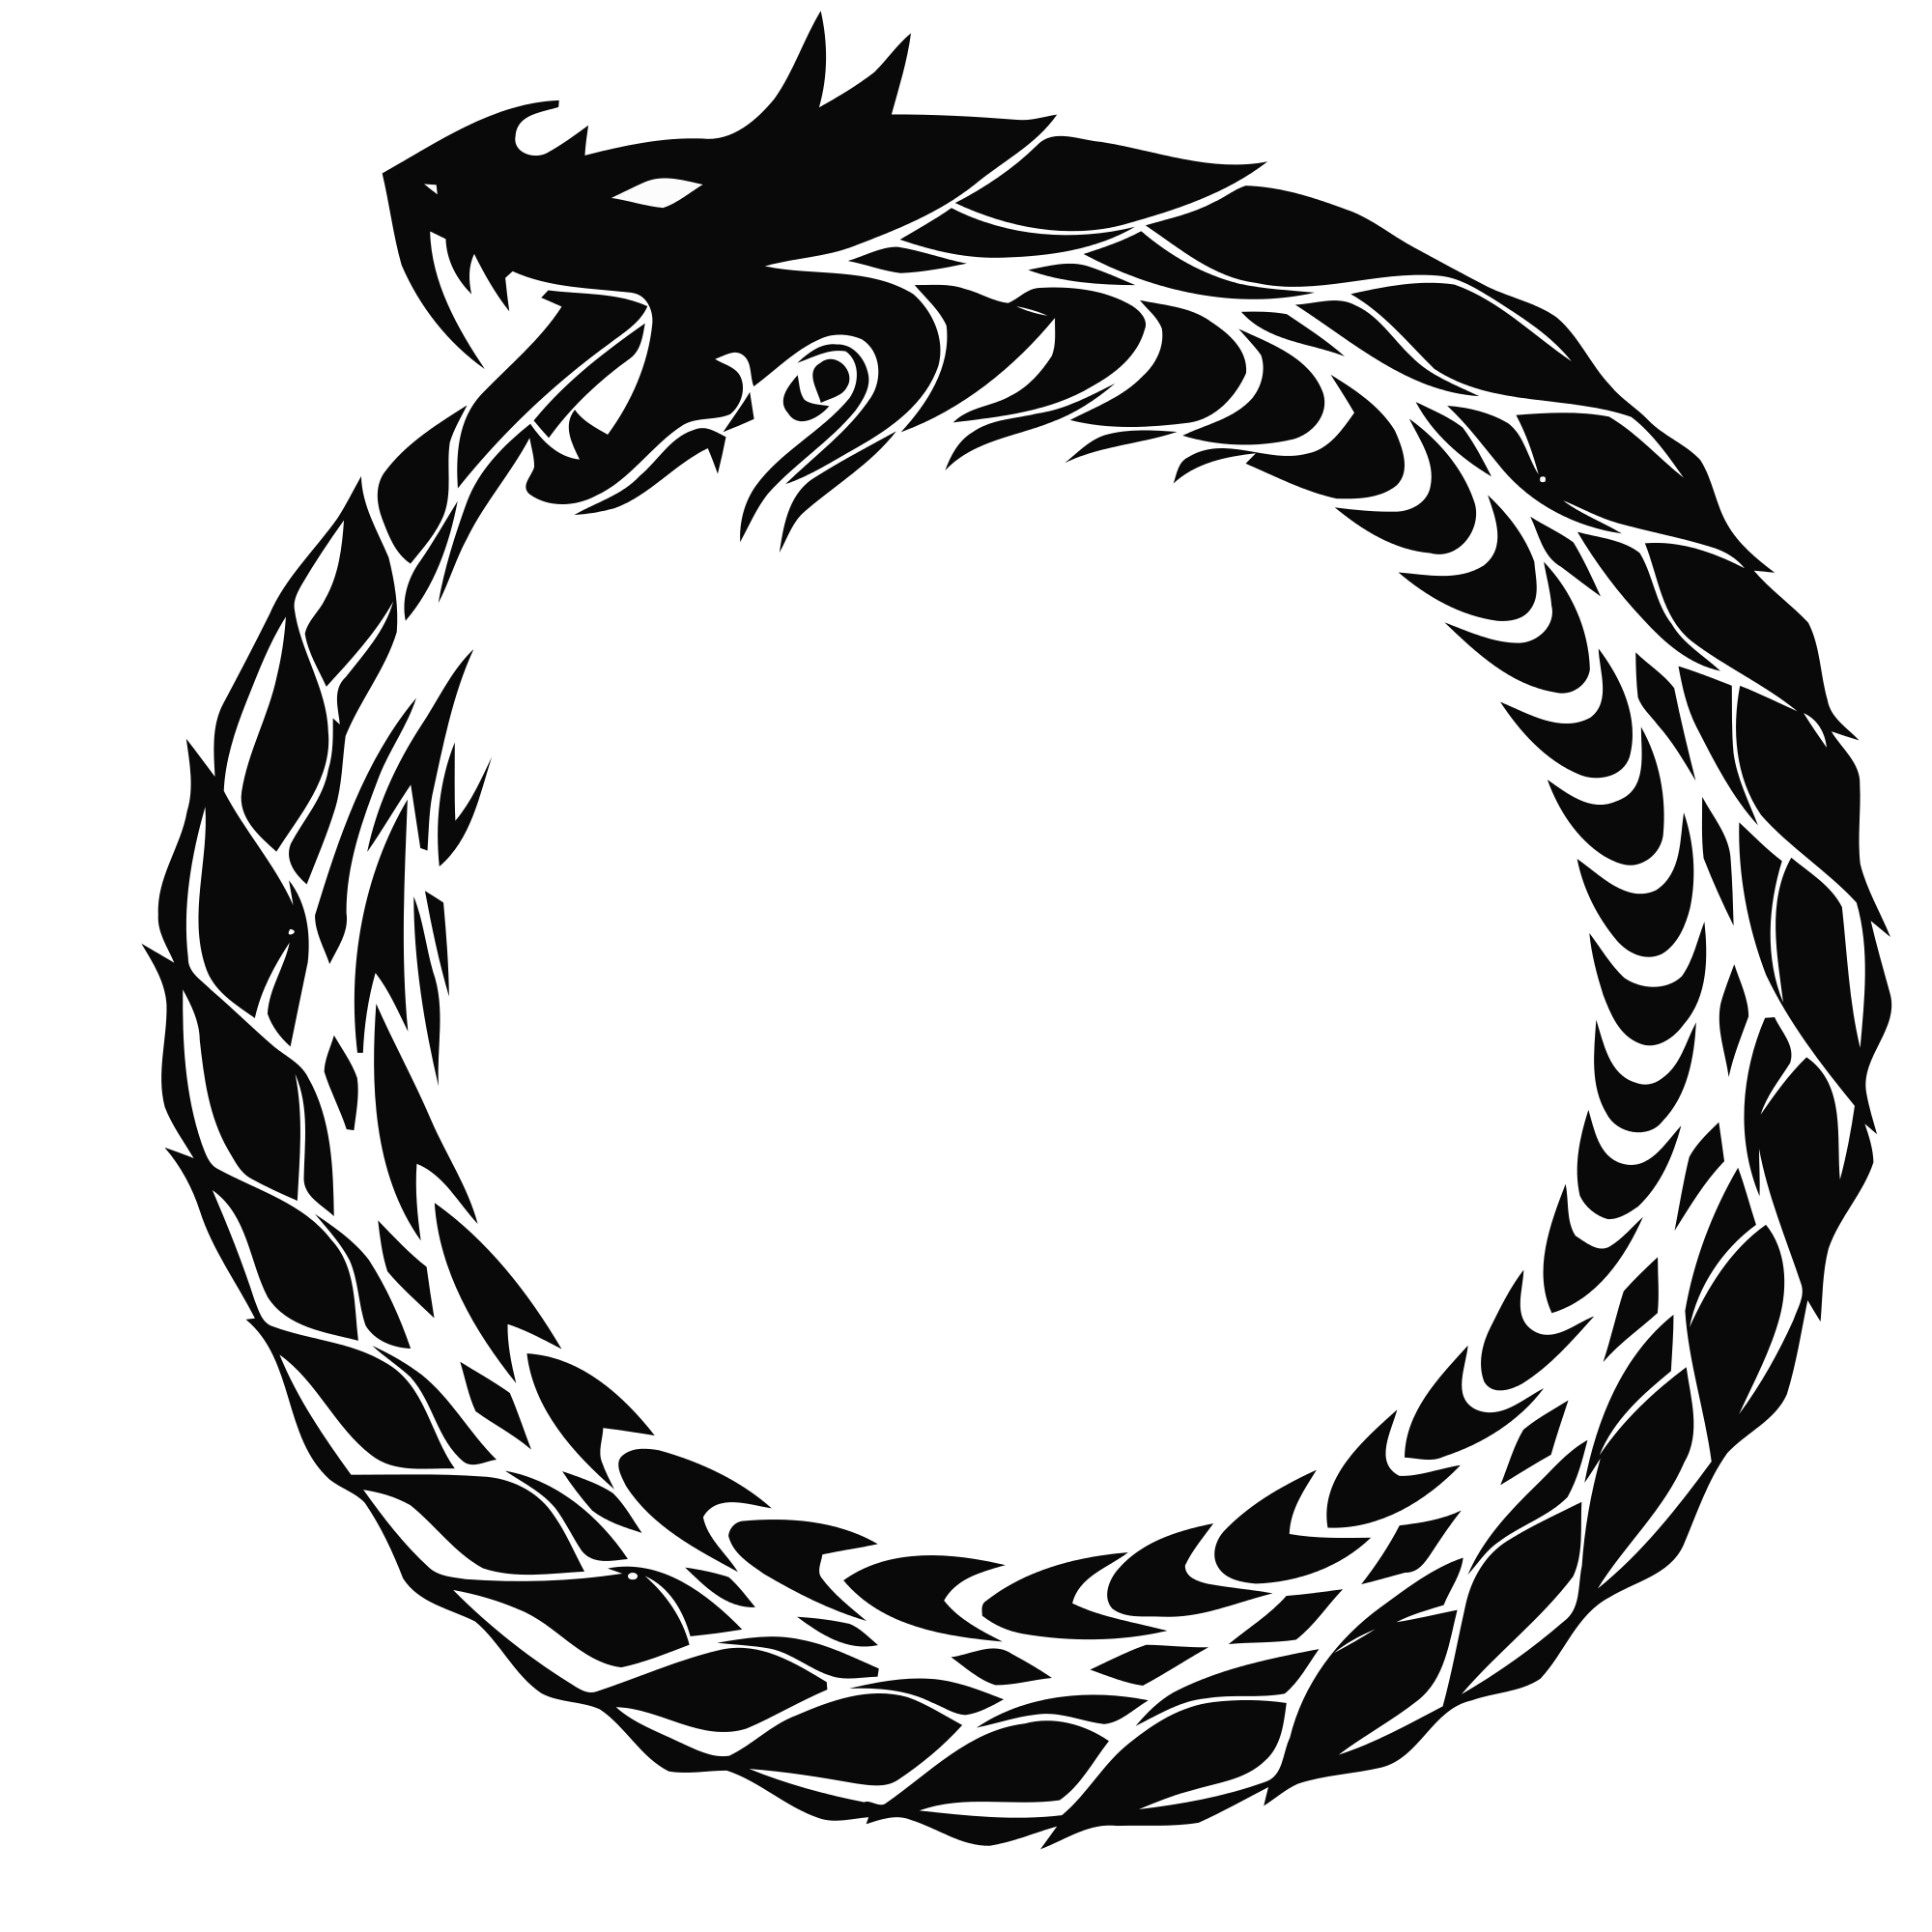 Ouroboros drawing cool. File svg wikimedia commons